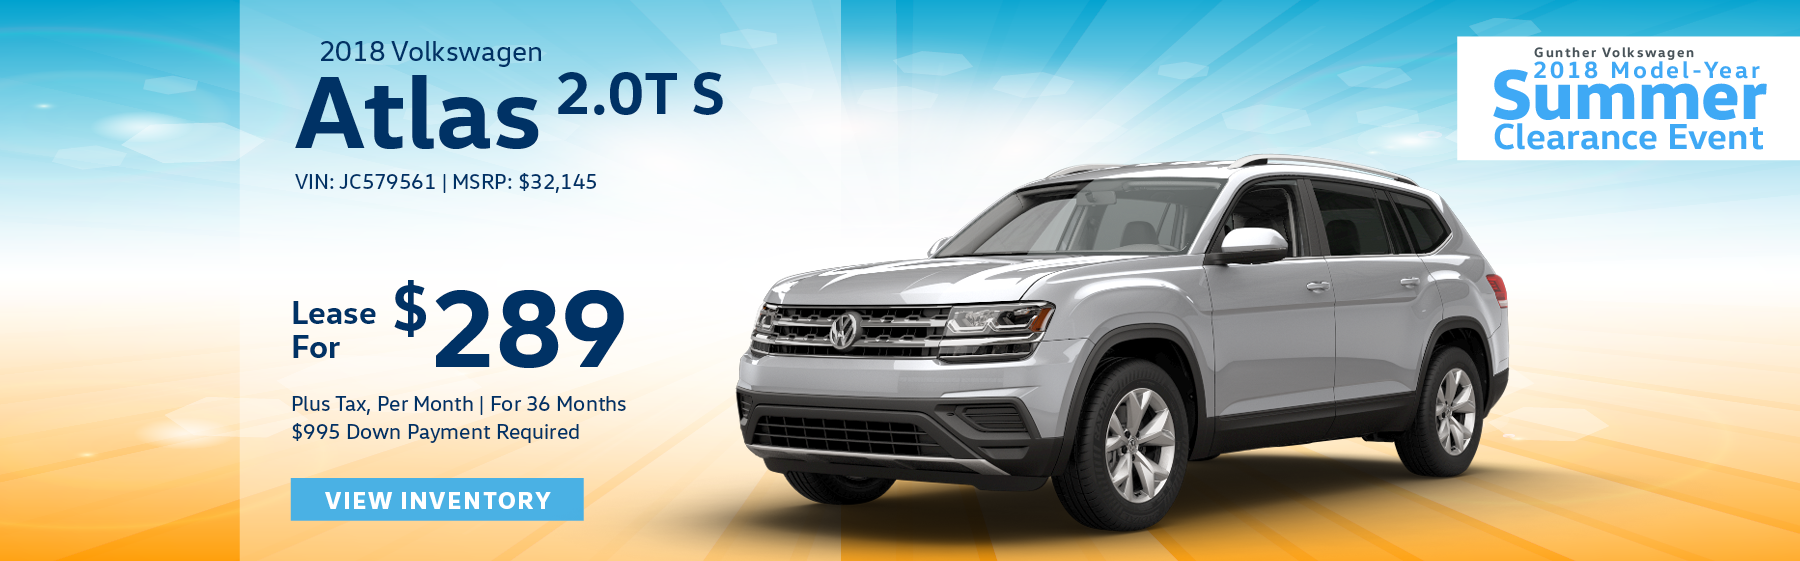 Lease the 2018 Volkswagen Atlas 2.0T S for $289 plus tax for 36 months. $995 Down payment required.